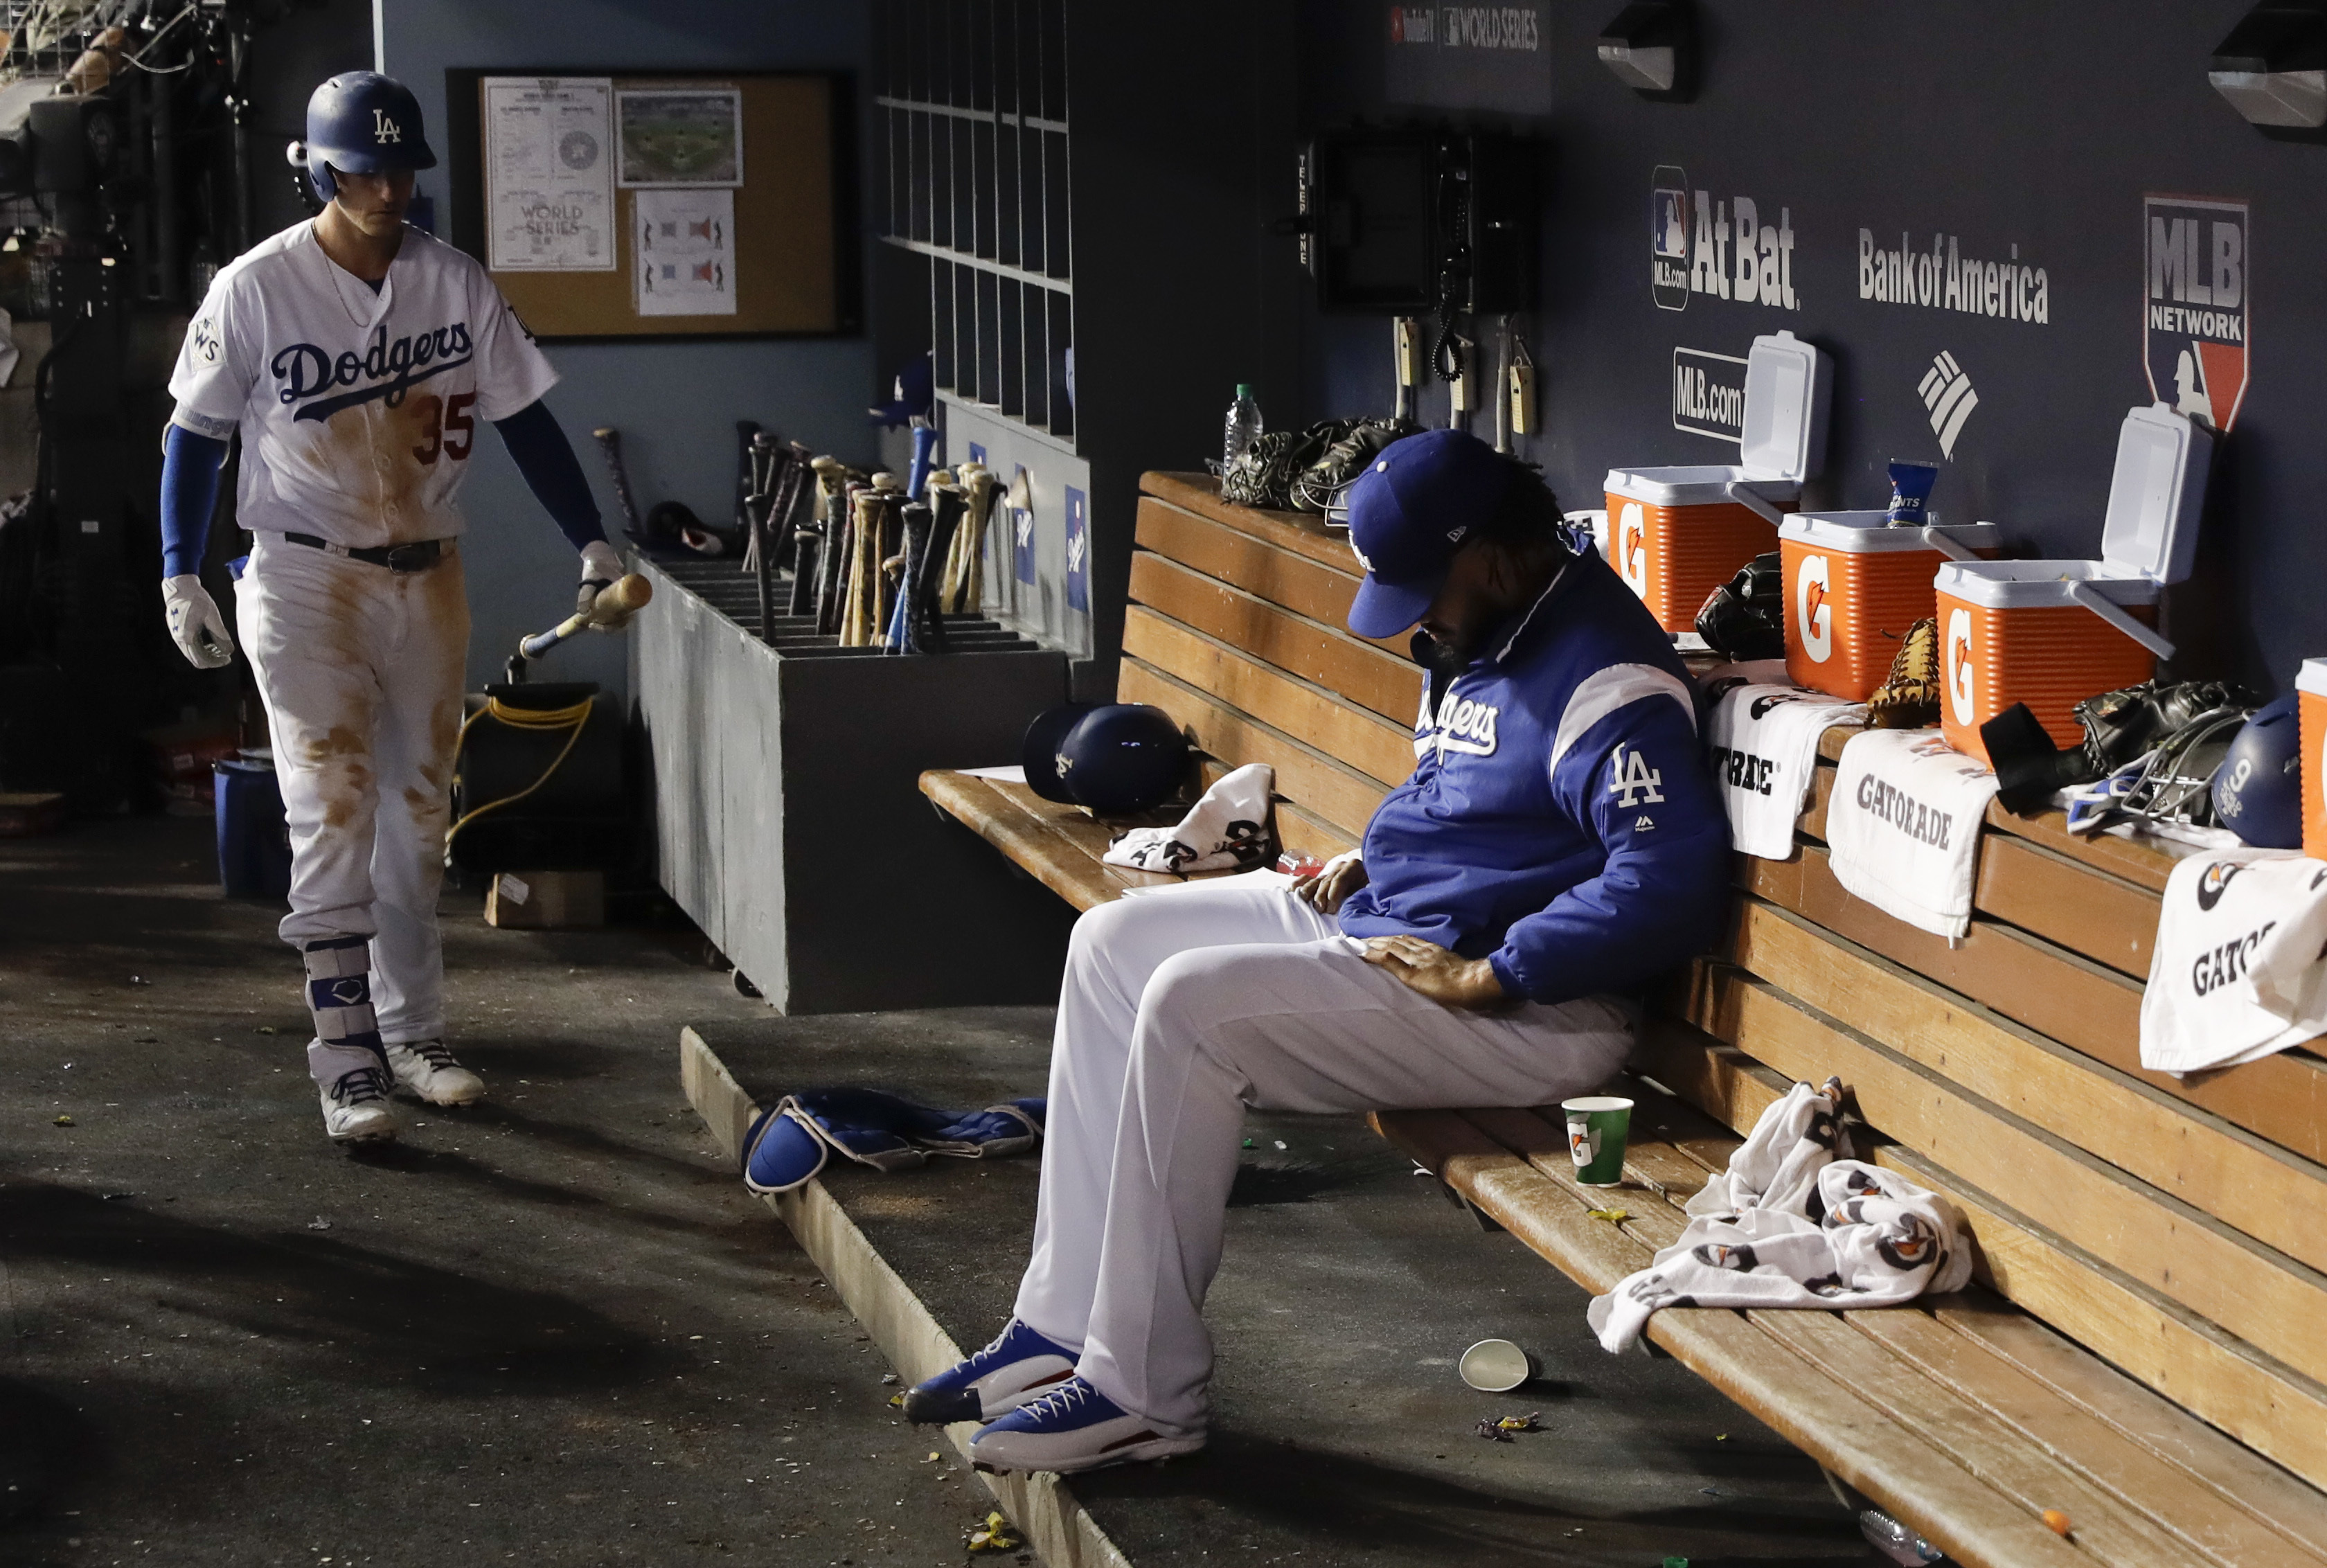 <div class='meta'><div class='origin-logo' data-origin='AP'></div><span class='caption-text' data-credit='(AP Photo/Matt Slocum)'>Dodgers relief pitcher Kenley Jansen sits in the dugout during the ninth inning of Game 2 of the World Series against the Houston Astros Wednesday, Oct. 25, 2017, in Los Angeles.</span></div>